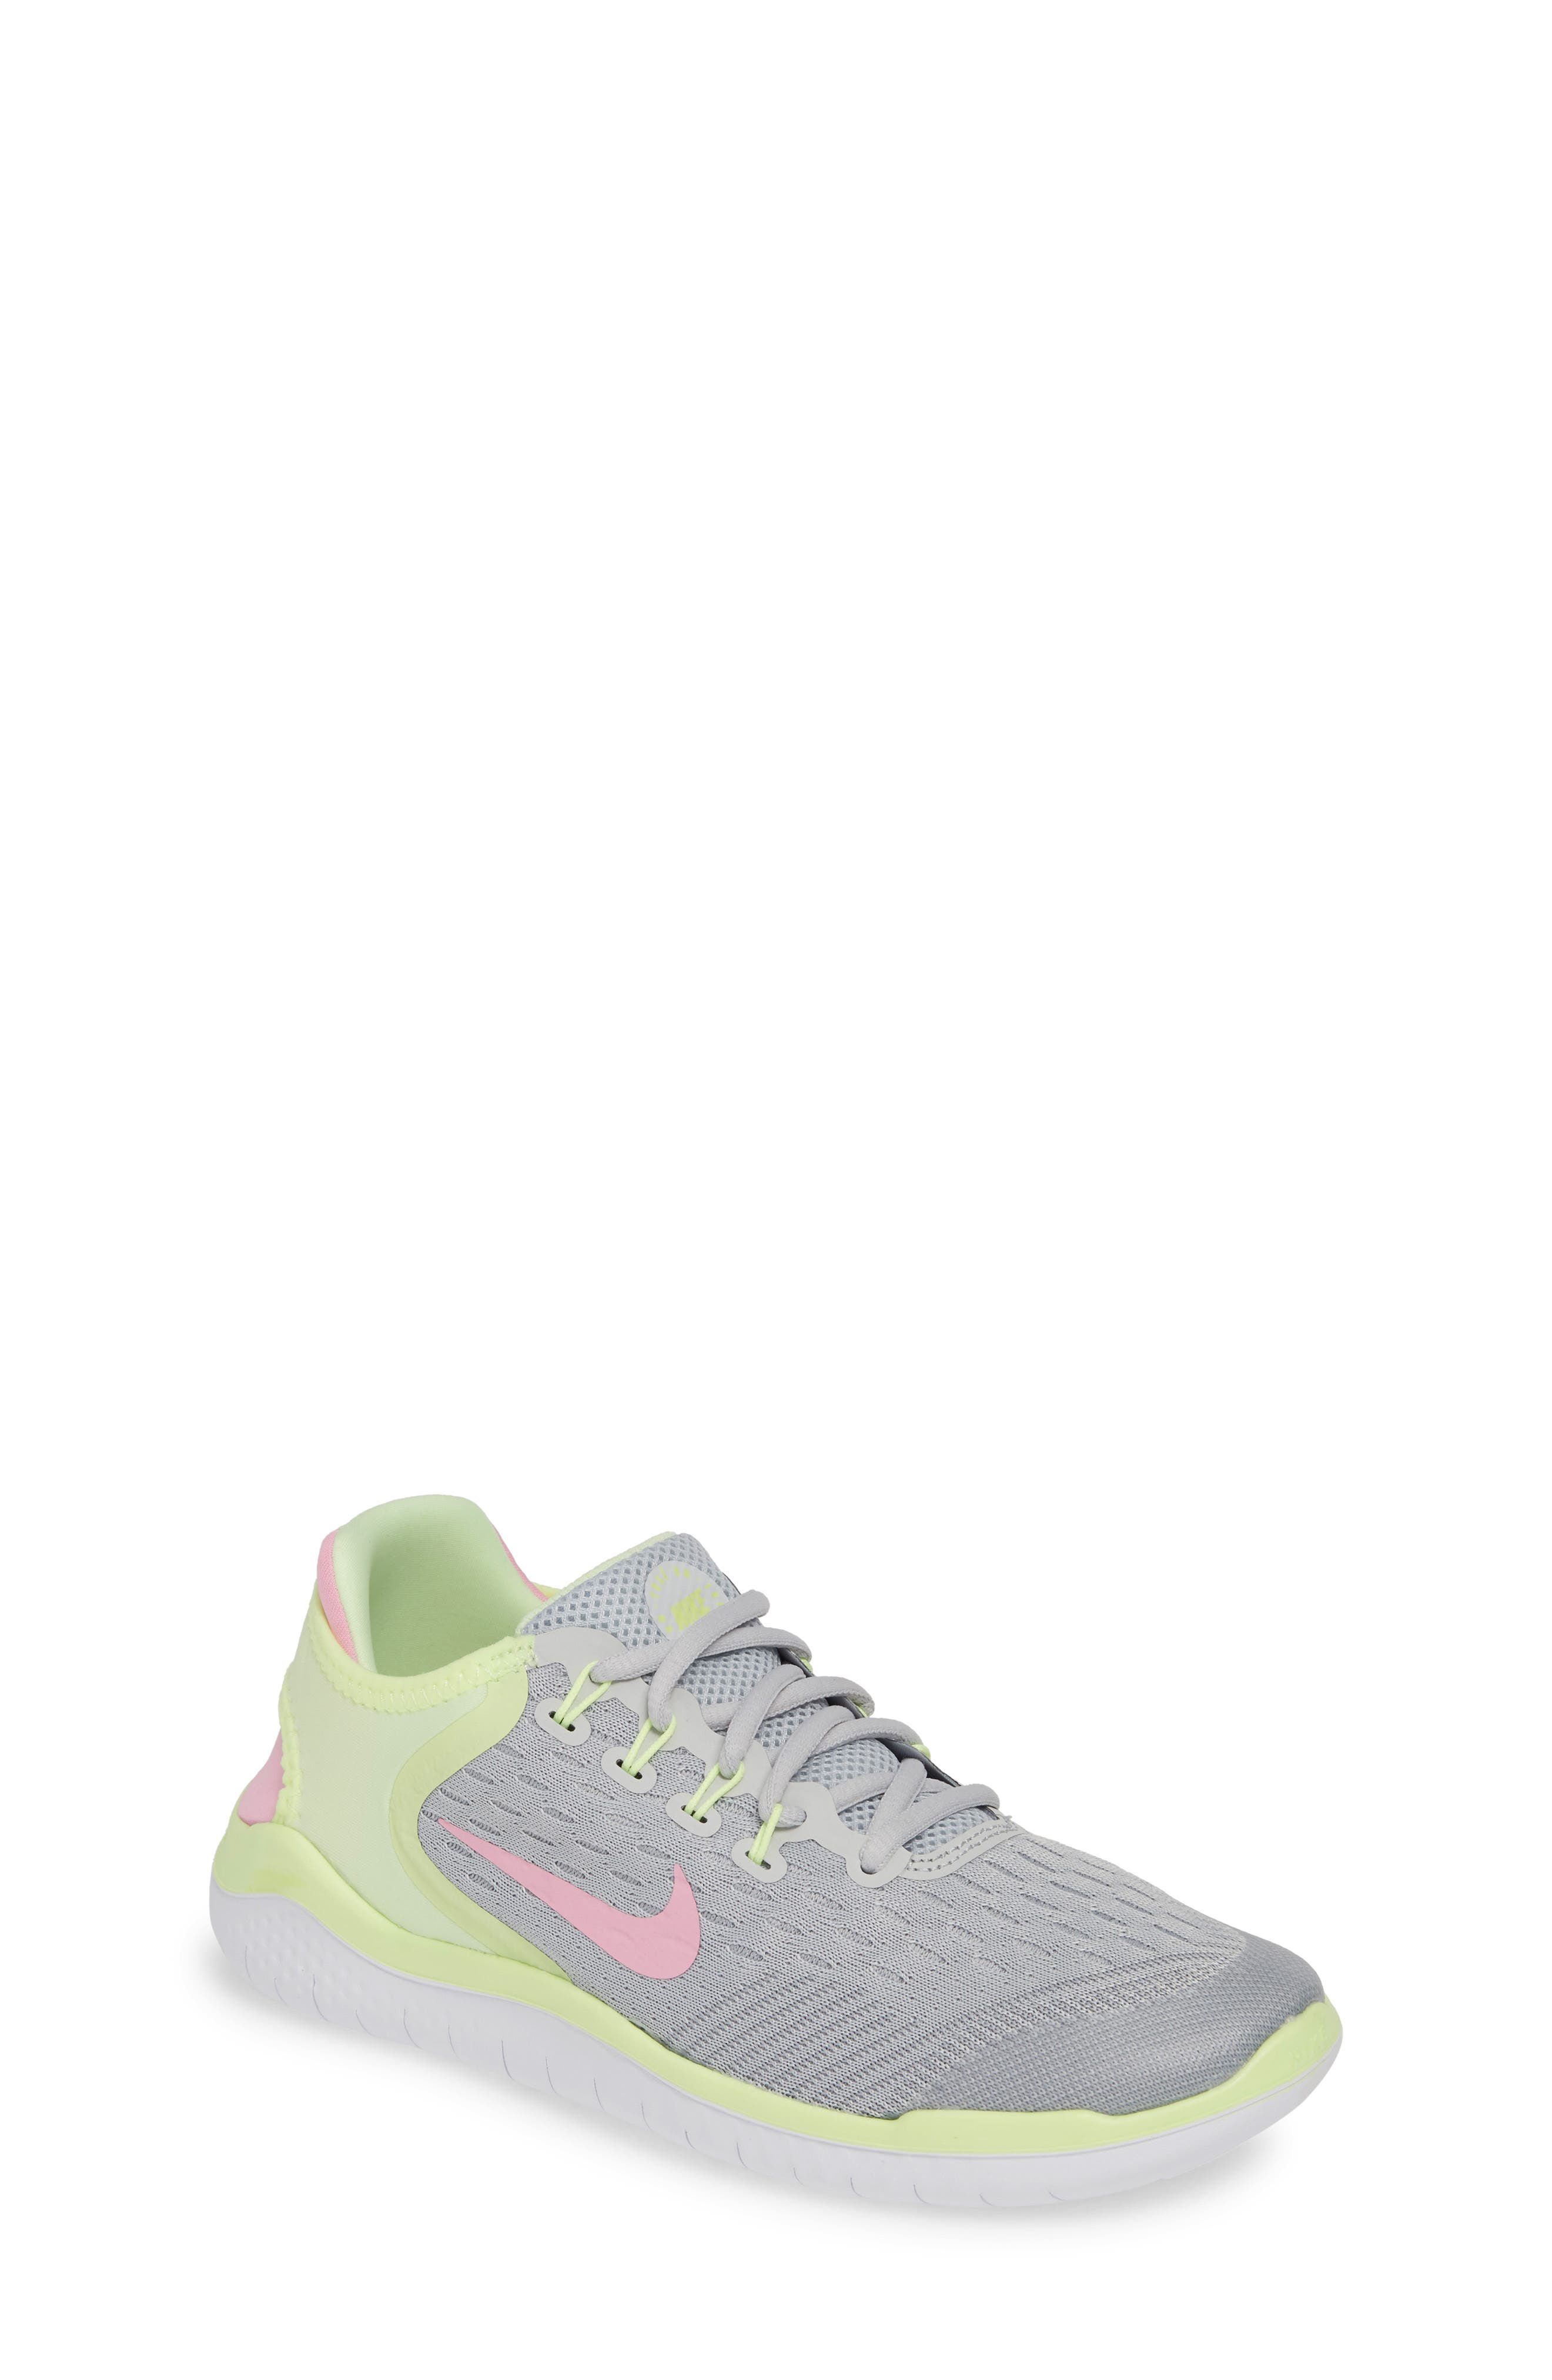 NIKE, Free RN 2018 Running Shoe, Main thumbnail 1, color, PURE PLATINUM/ PINK RISE-VOLT